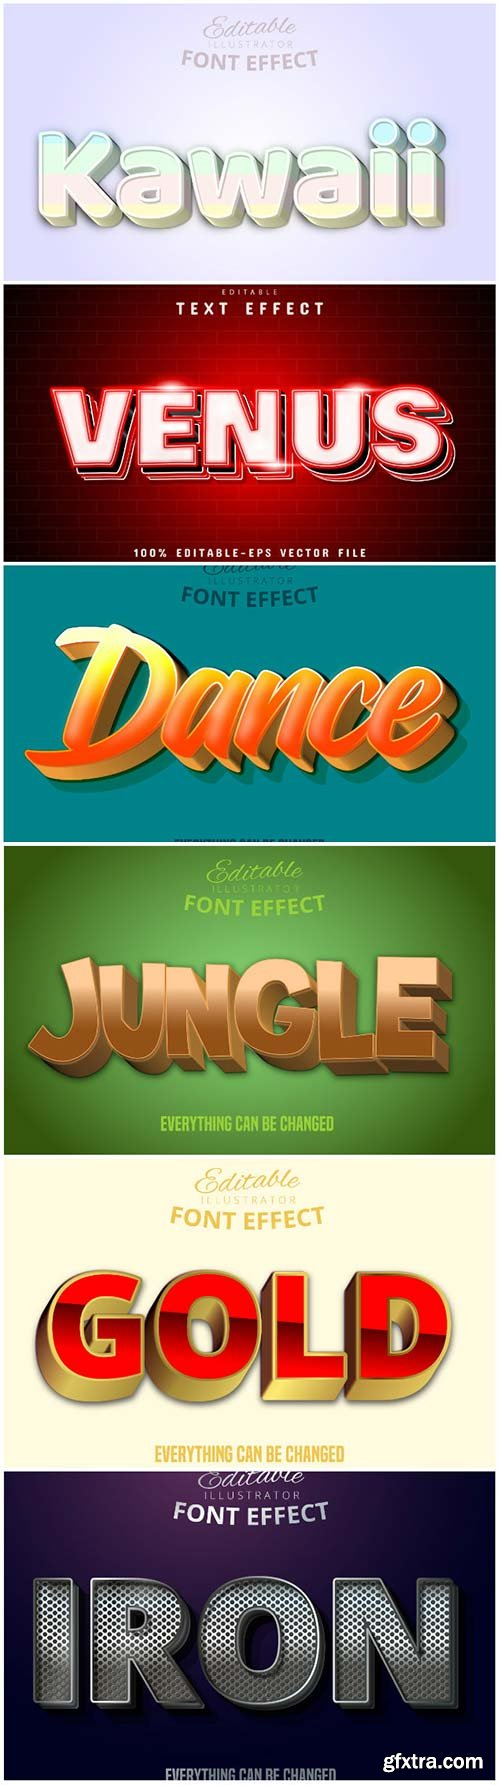 3d editable text style effect vector vol 167